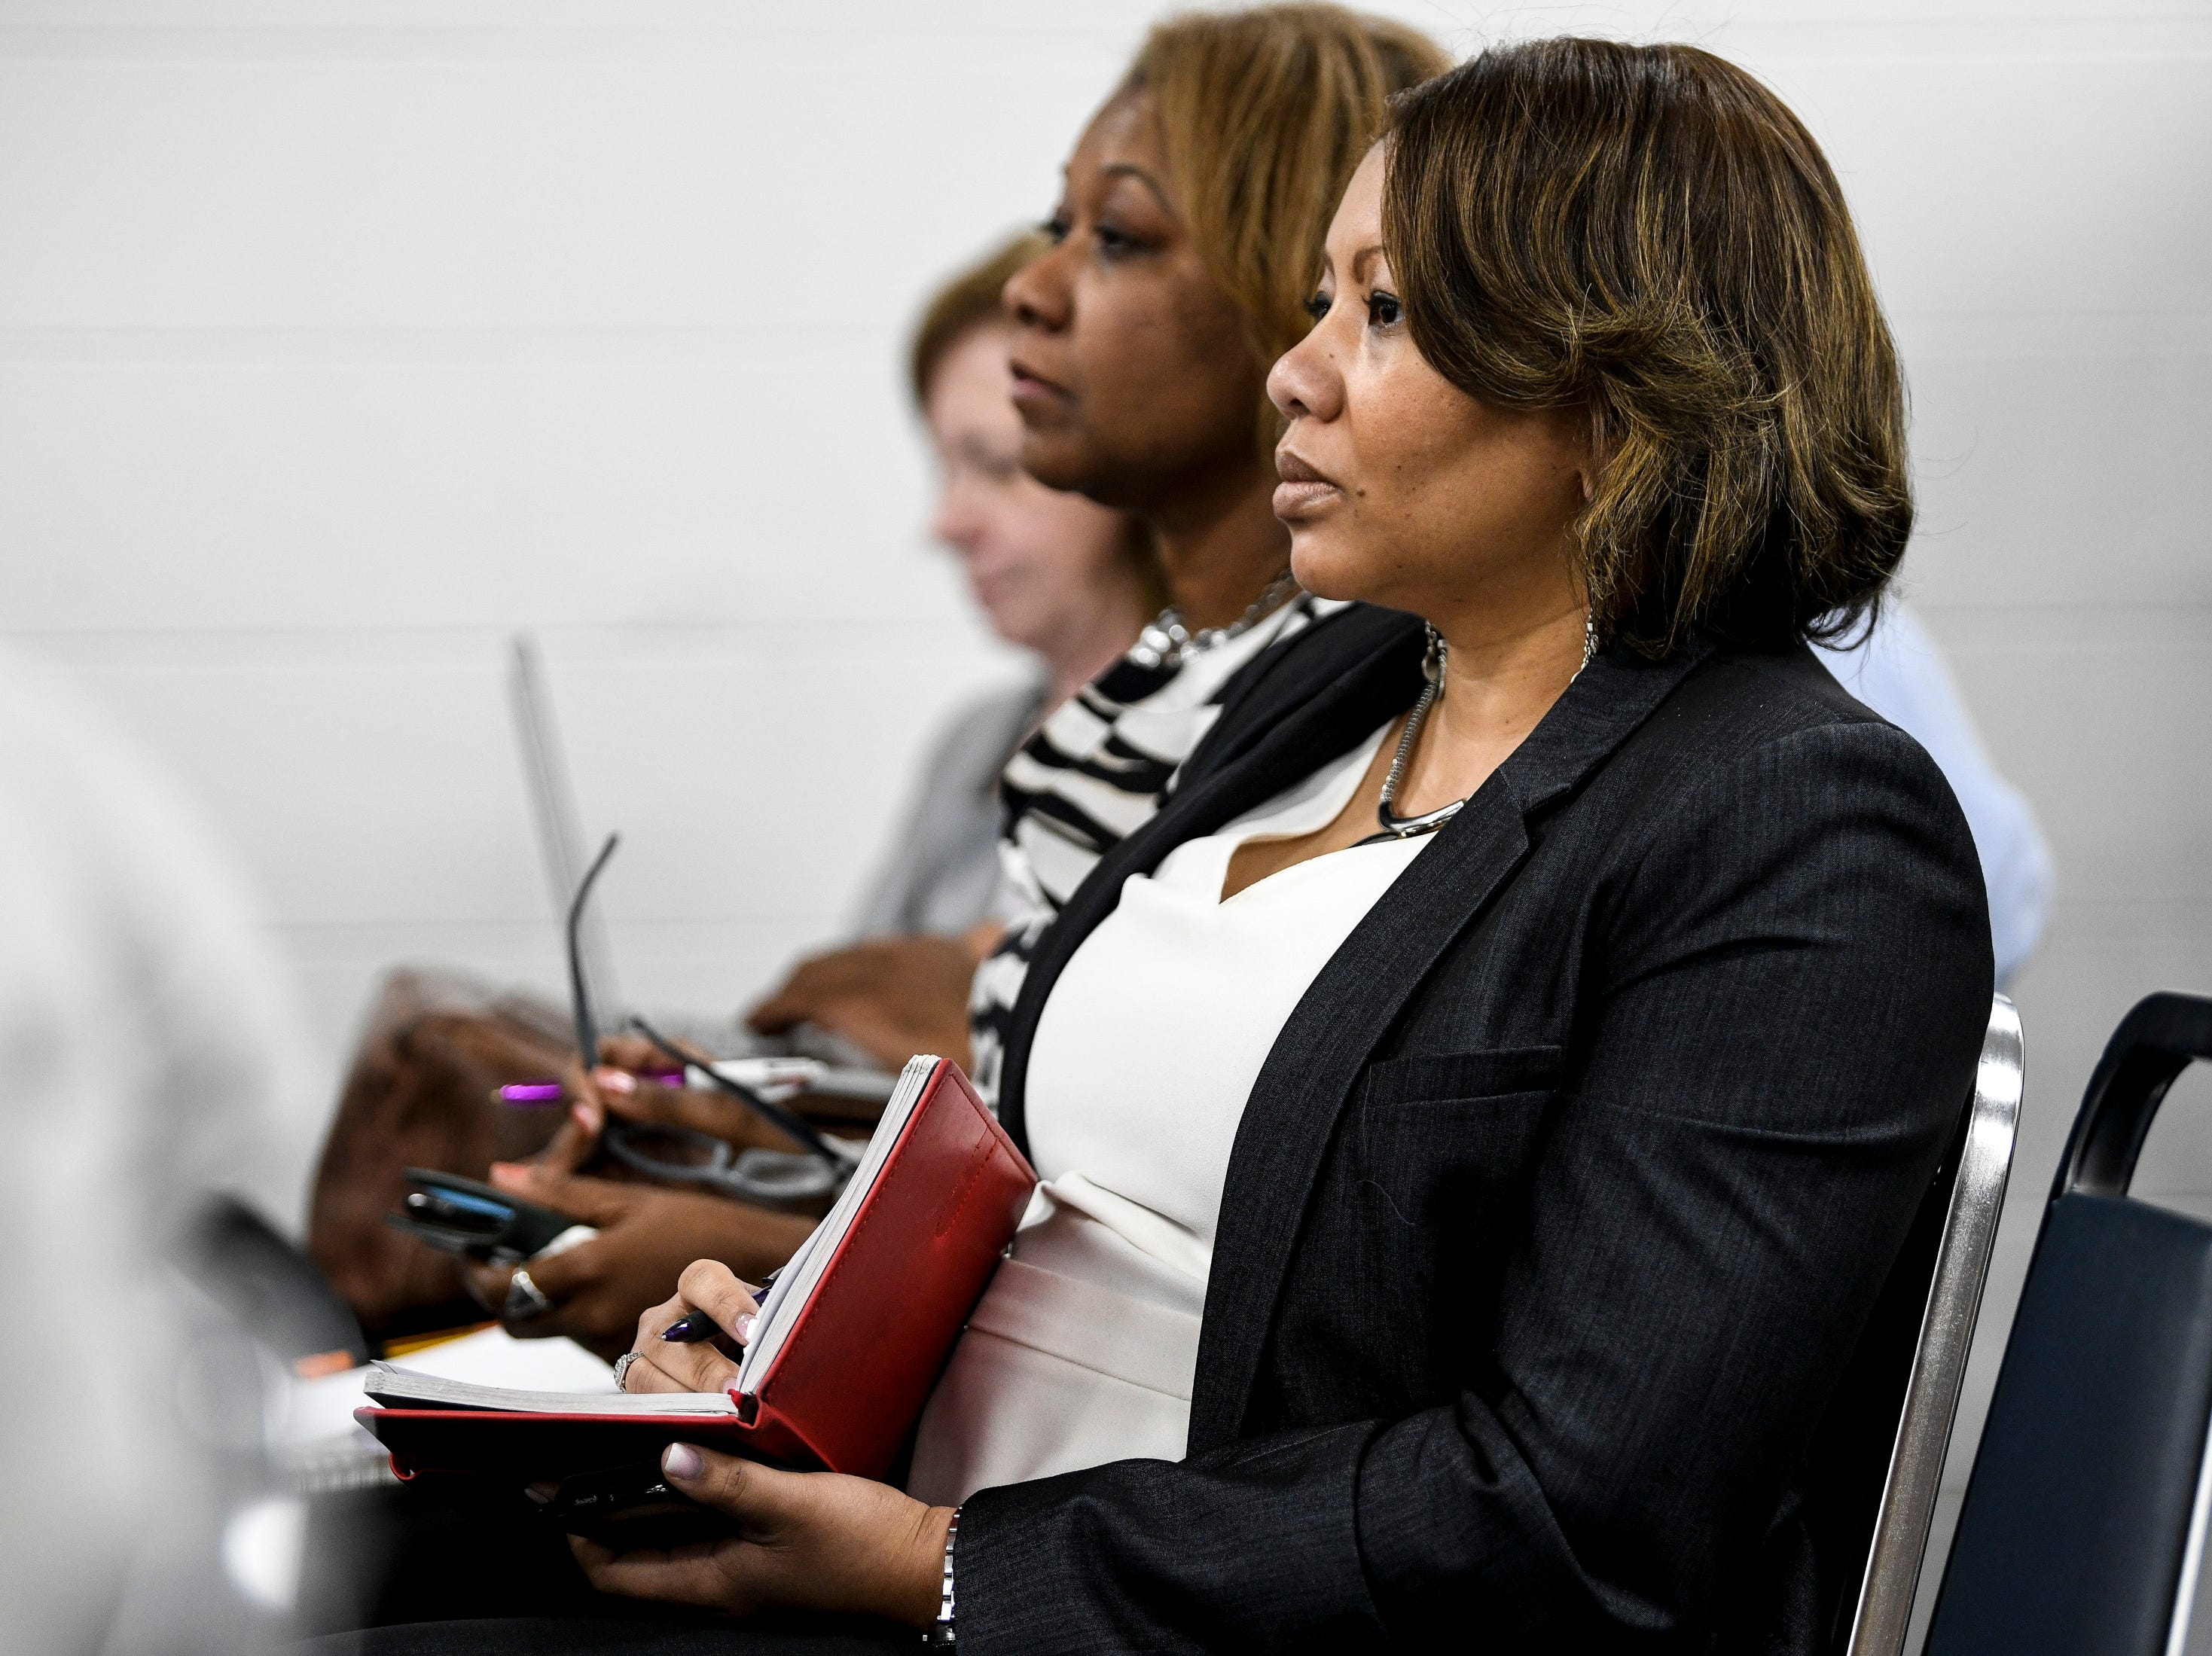 MNPS Community Superintendent Dr. Adrienne Battle listens as she is nominated to be interim director during the MNPS Board of Public Education meeting at the Administration Building of Metropolitan Public Schools in Nashville, Tenn., Tuesday, April 9, 2019.